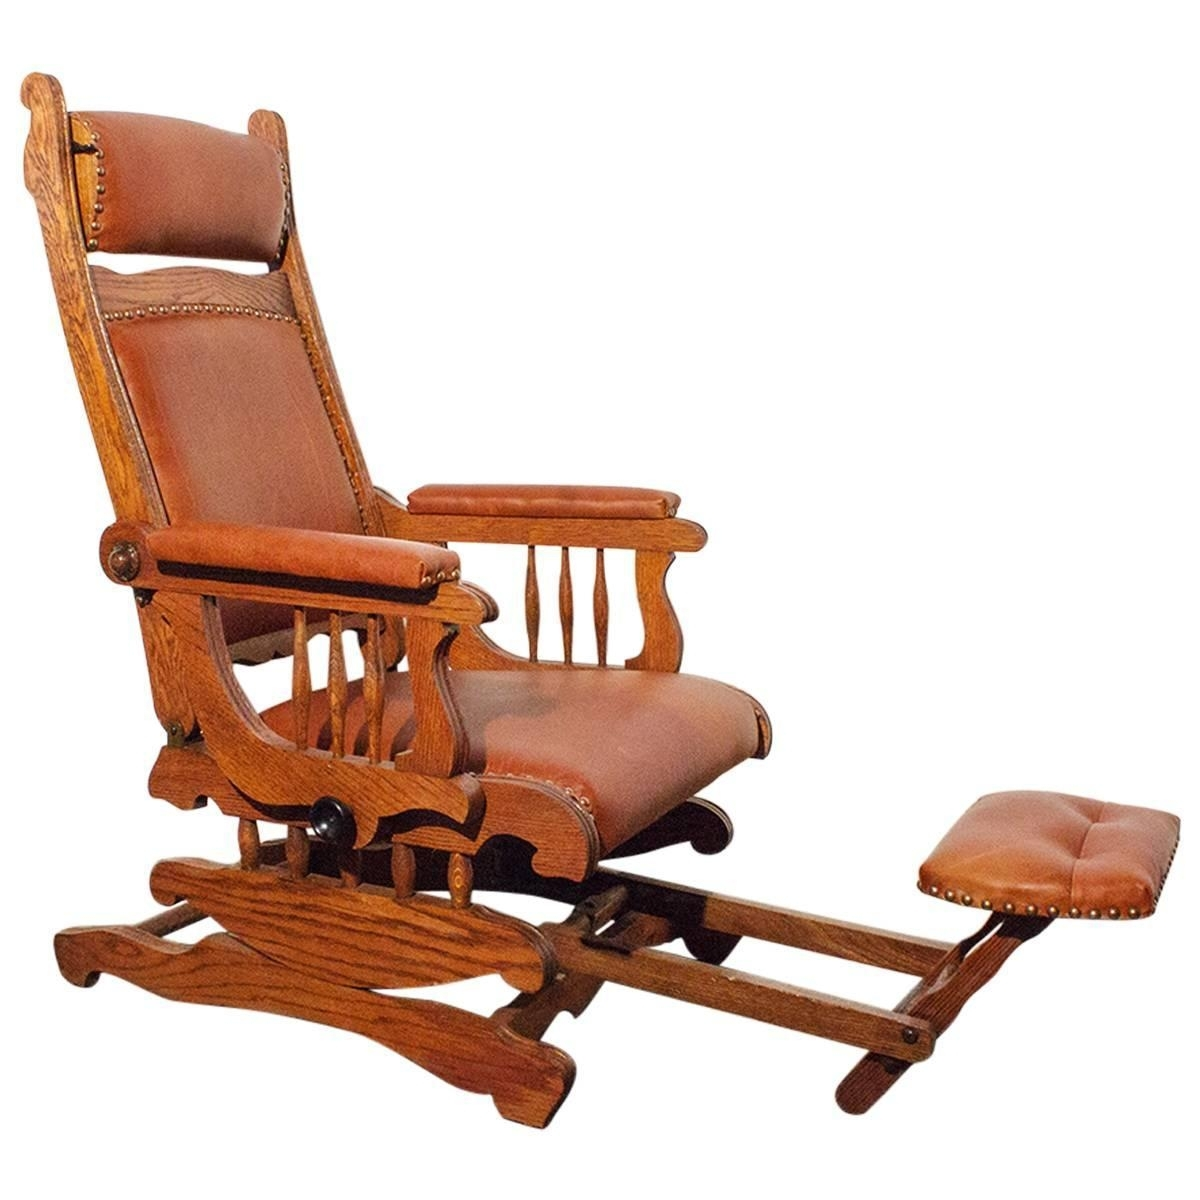 Victorian Platform Rocker With Foot Rest, Circa 1890 At 1Stdibs Within Rocking Chairs With Footrest (#14 of 15)